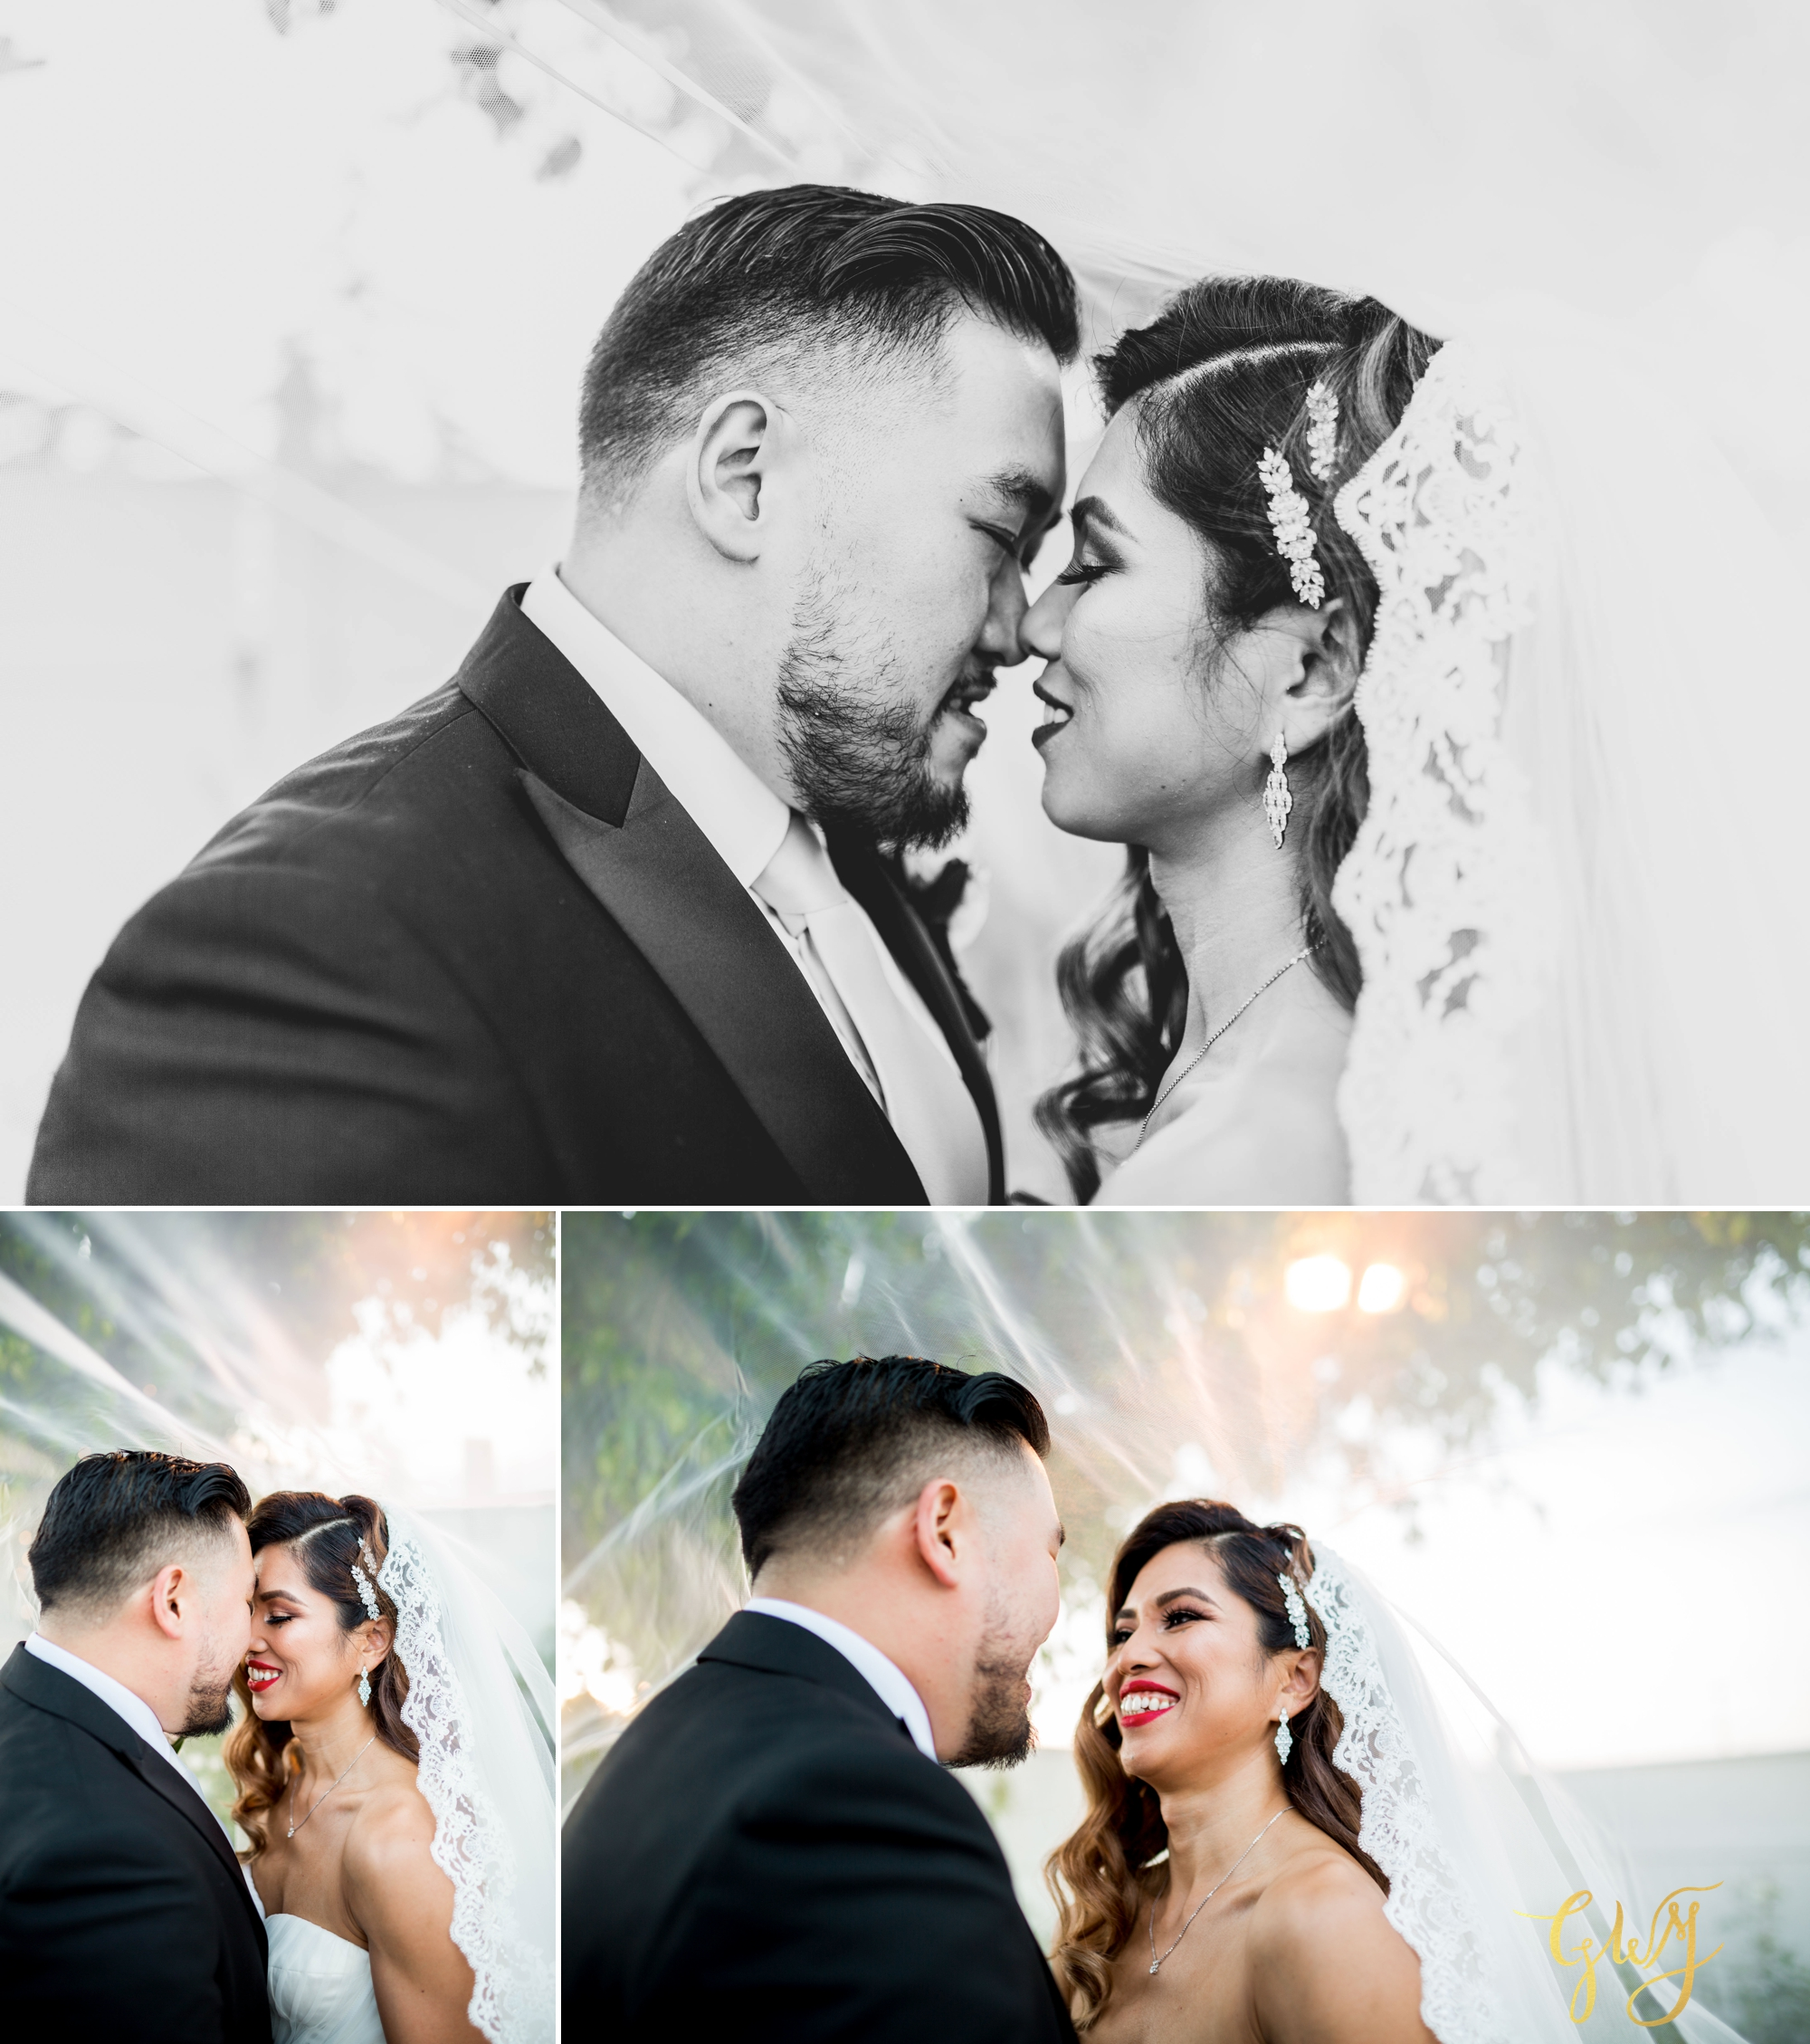 Andy + Caselyn's White House Event Center Orange County Spring Wedding by Glass Woods Media 37.jpg